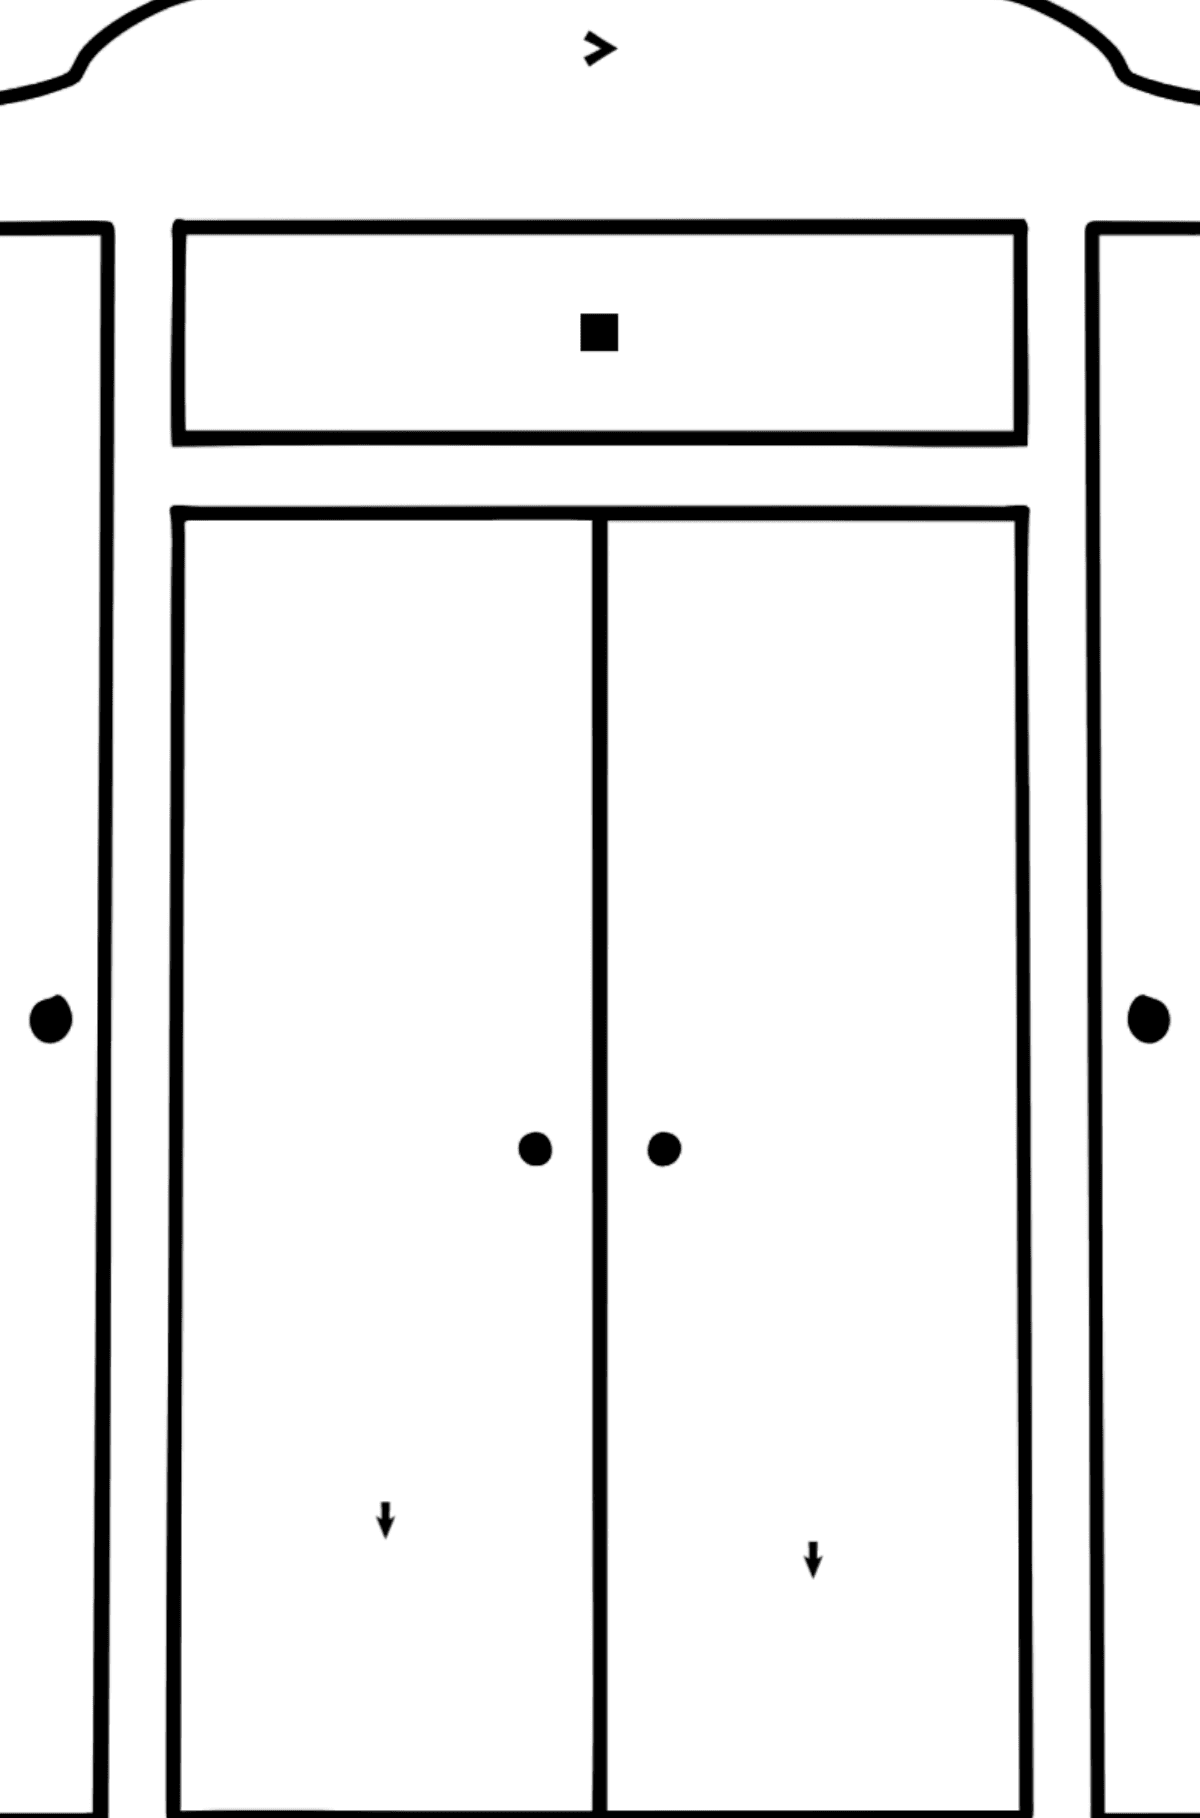 Wardrobe coloring page - Coloring by Symbols for Kids